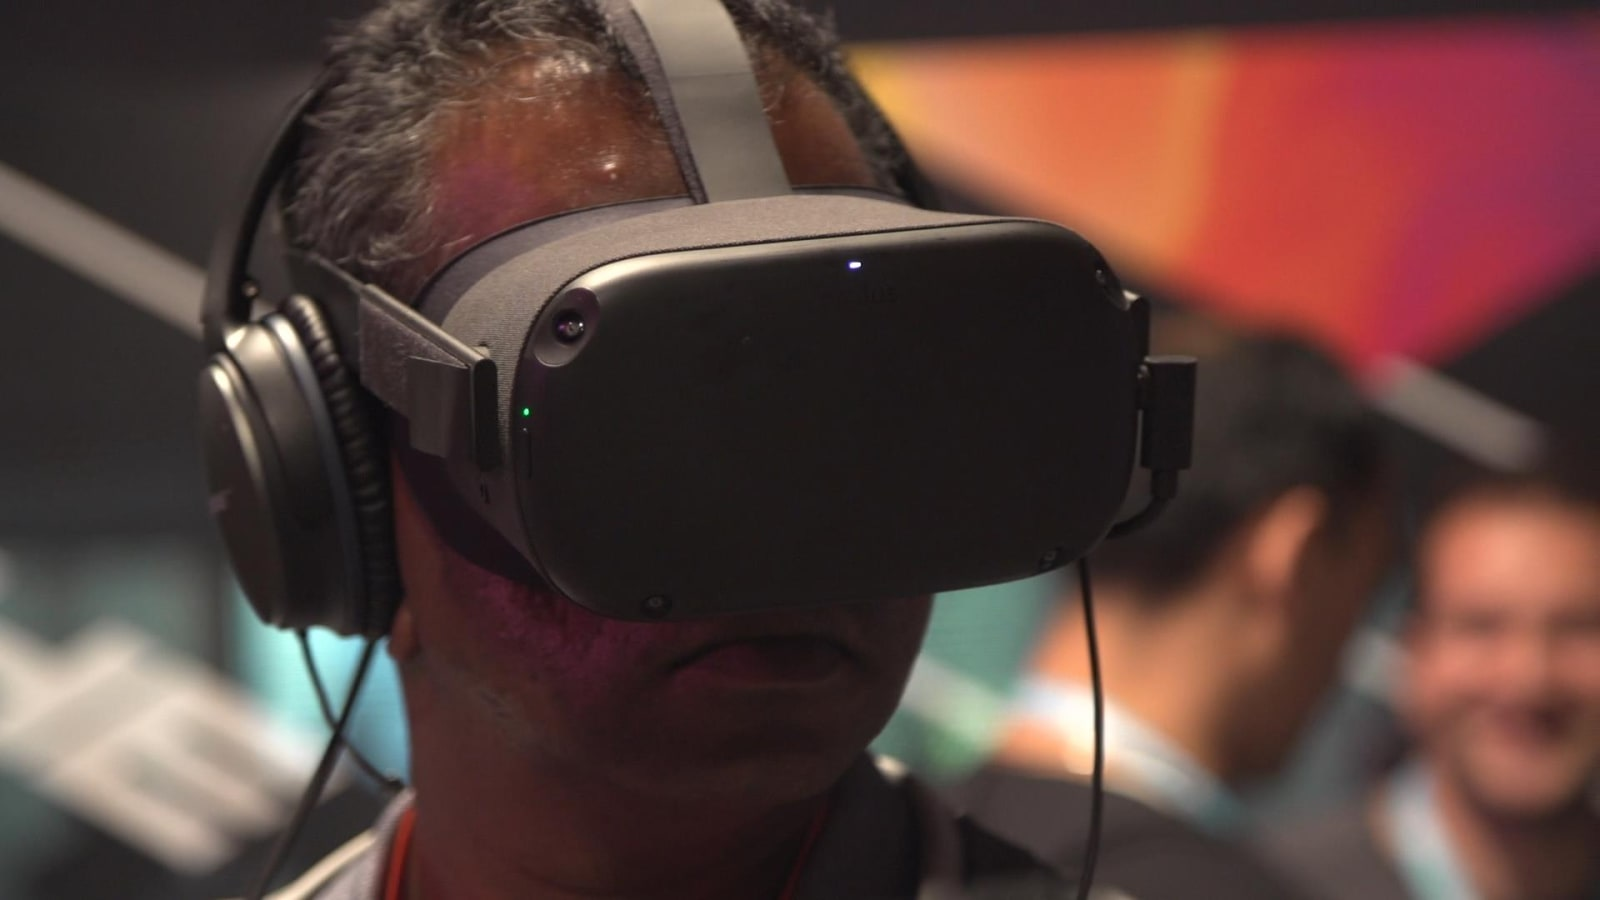 Oculus Link on the Quest